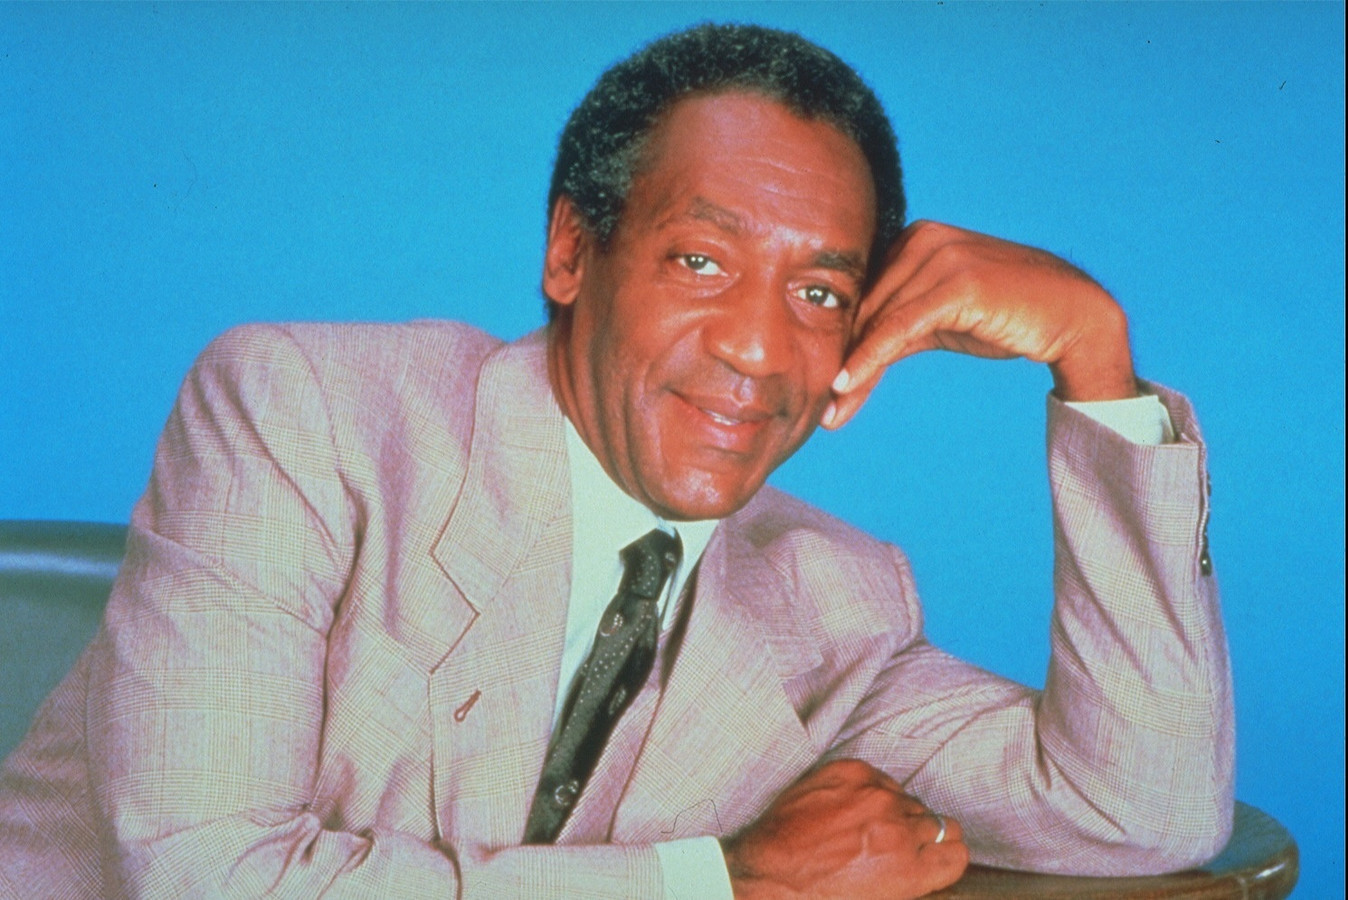 bill cosby thesis Bill cosby phd dissertation bill cosby phd dissertation how to write your college essay bill cosby doctorate dissertation essay on my dream kitchen write my essay for me cheap non0plagiarizedwhat is a thesis bill cosby phd dissertation how to write a good application essay ged essay help thesiskcls online homework help bill cosby doctoral dissertation websites for writing college essays essay.